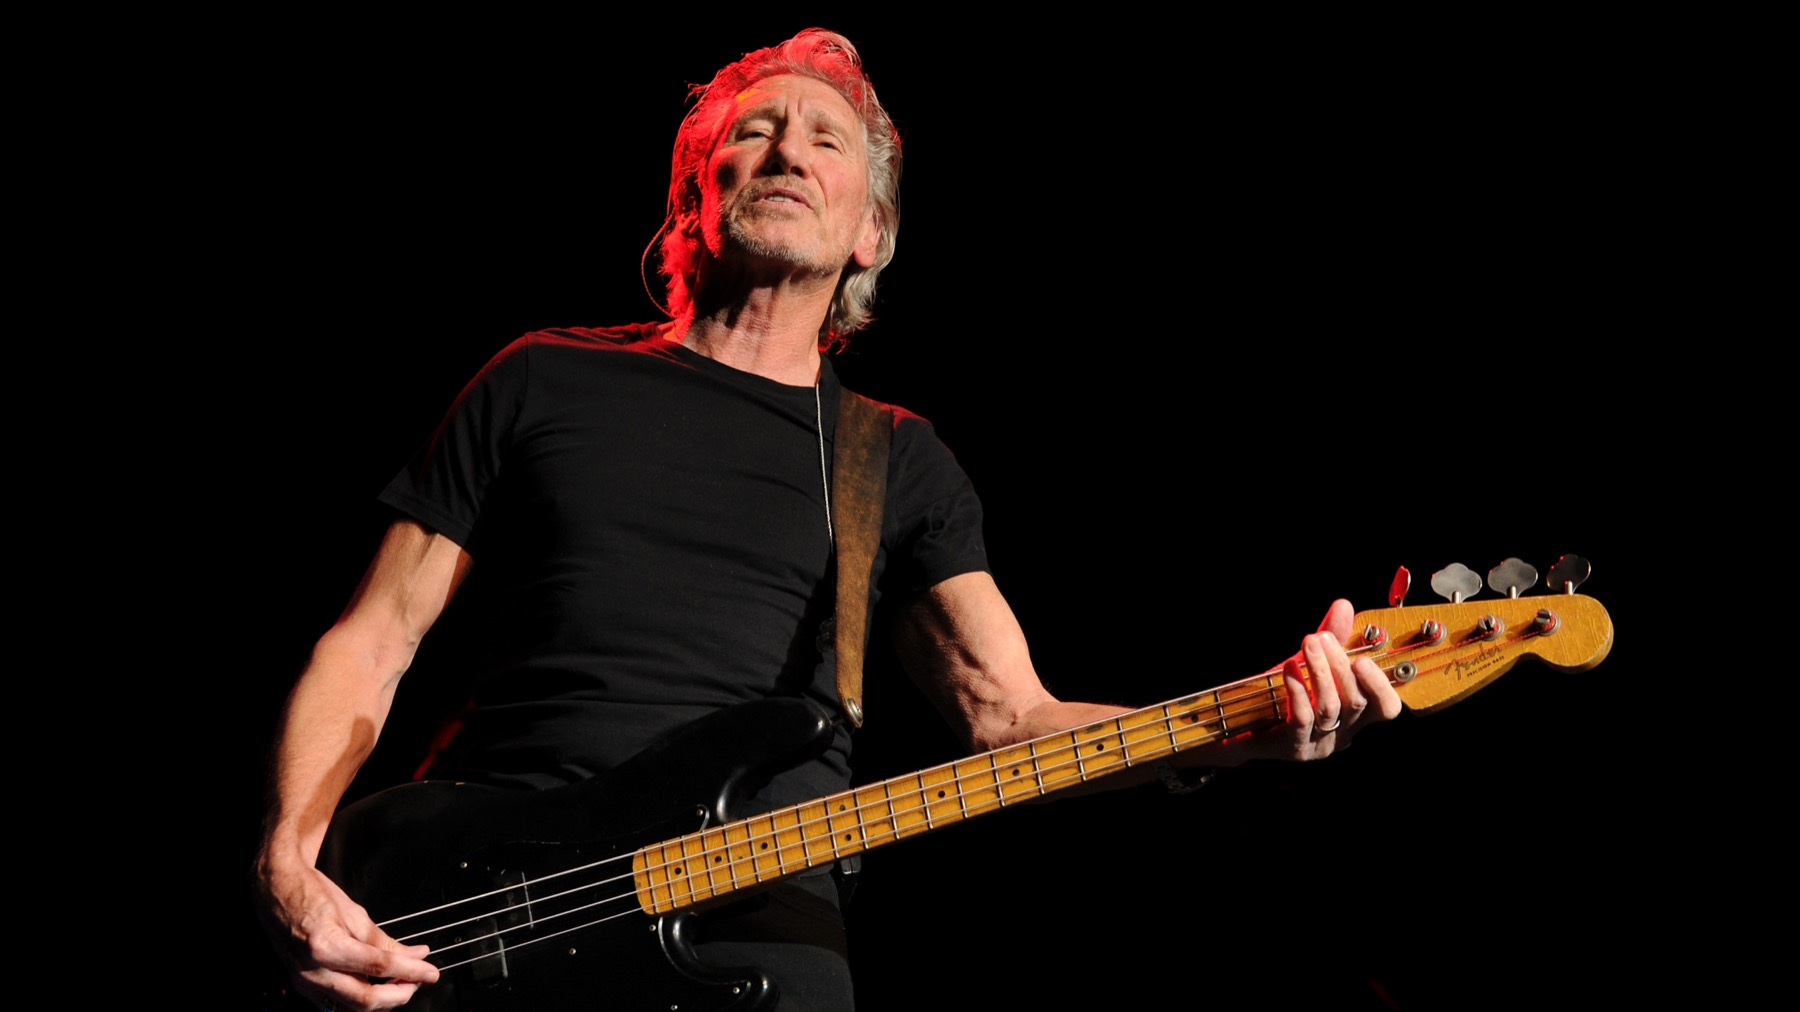 Roger Waters – This Is Not a Drill Tour